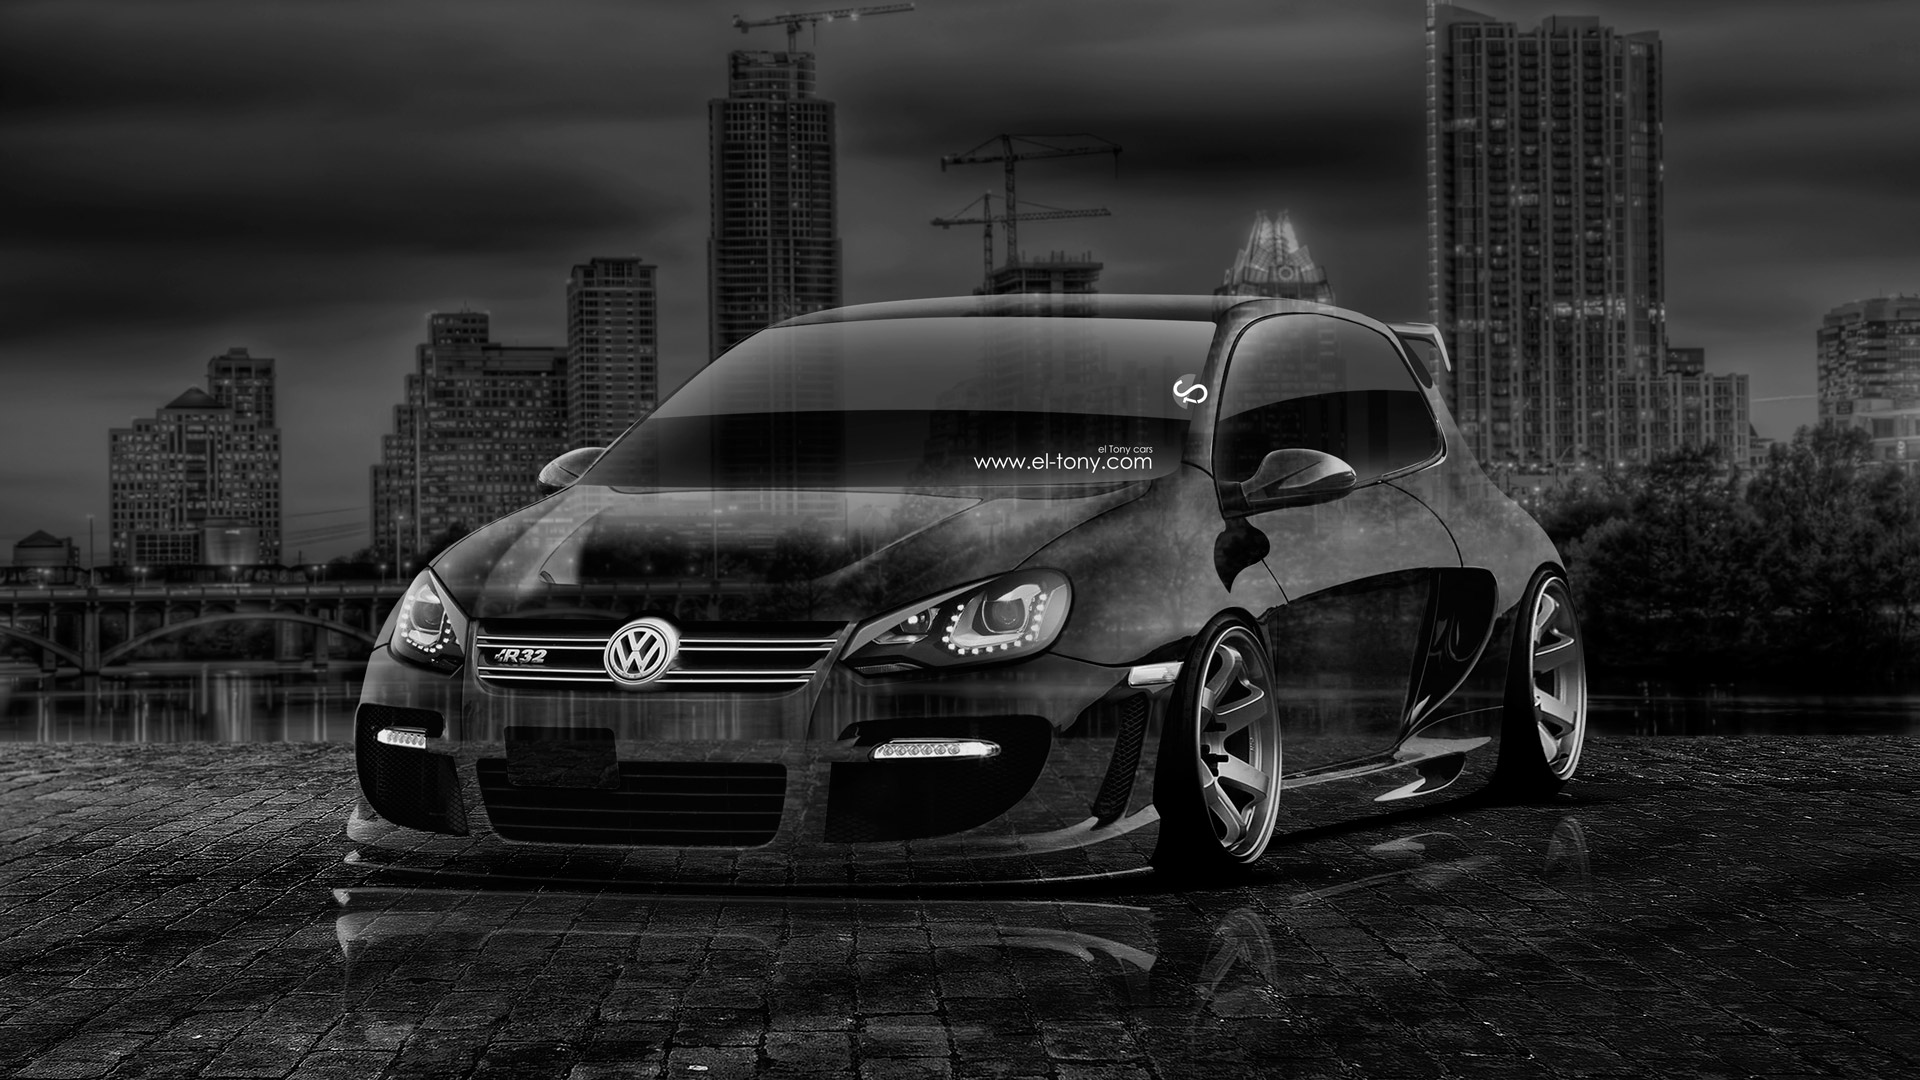 High Quality Volkswagen Golf R32 Tuning Crystal City Car 2014